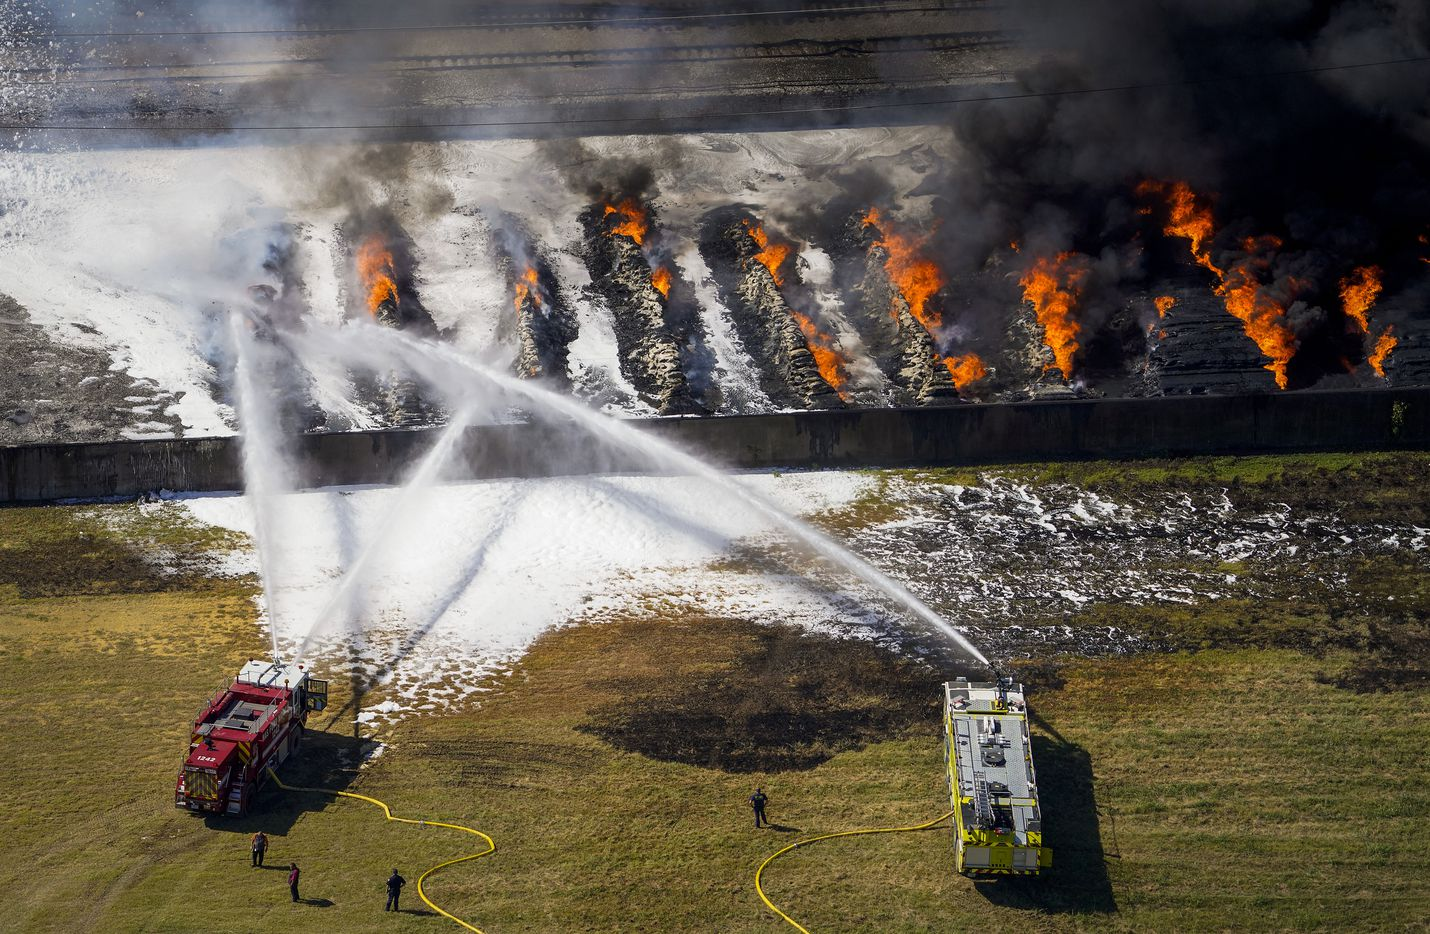 Aerial view of fire crews working at the site of a massive blaze in an industrial area on Wednesday, Aug. 19, 2020 in of Grand Prairie, Texas. The fire in the 2000 block of West Marshall Drive, near the Bush Turnpike. Among the businesses in the area is Poly-America, a company that produces trash bags and other plastic products.